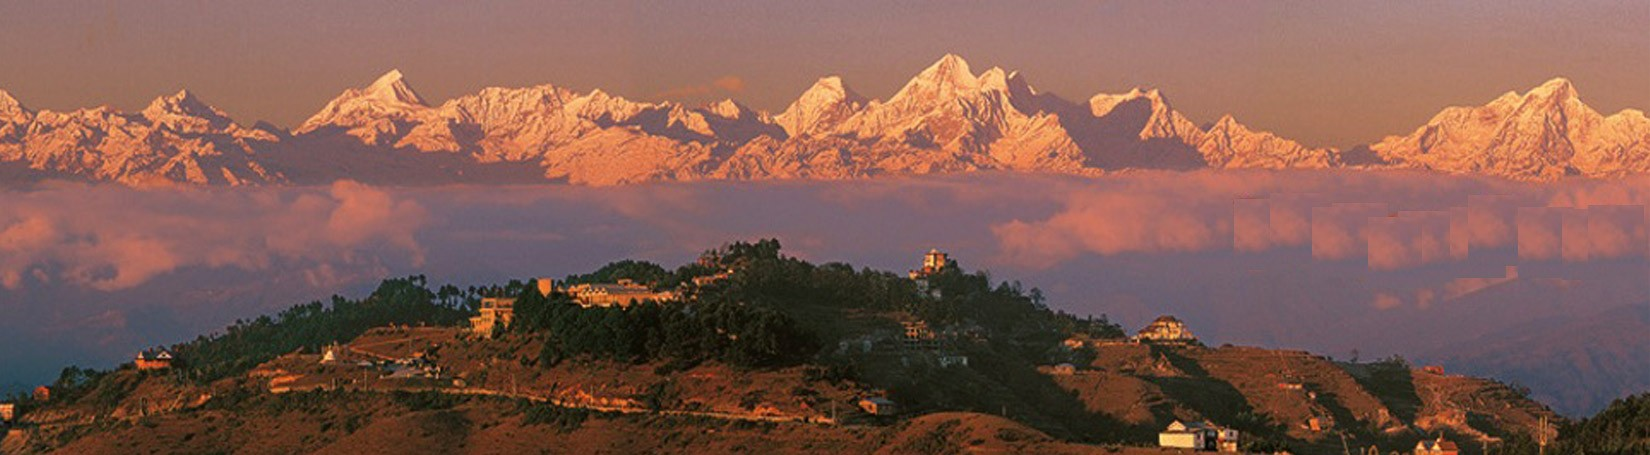 Nagarkot at Sunrise Time